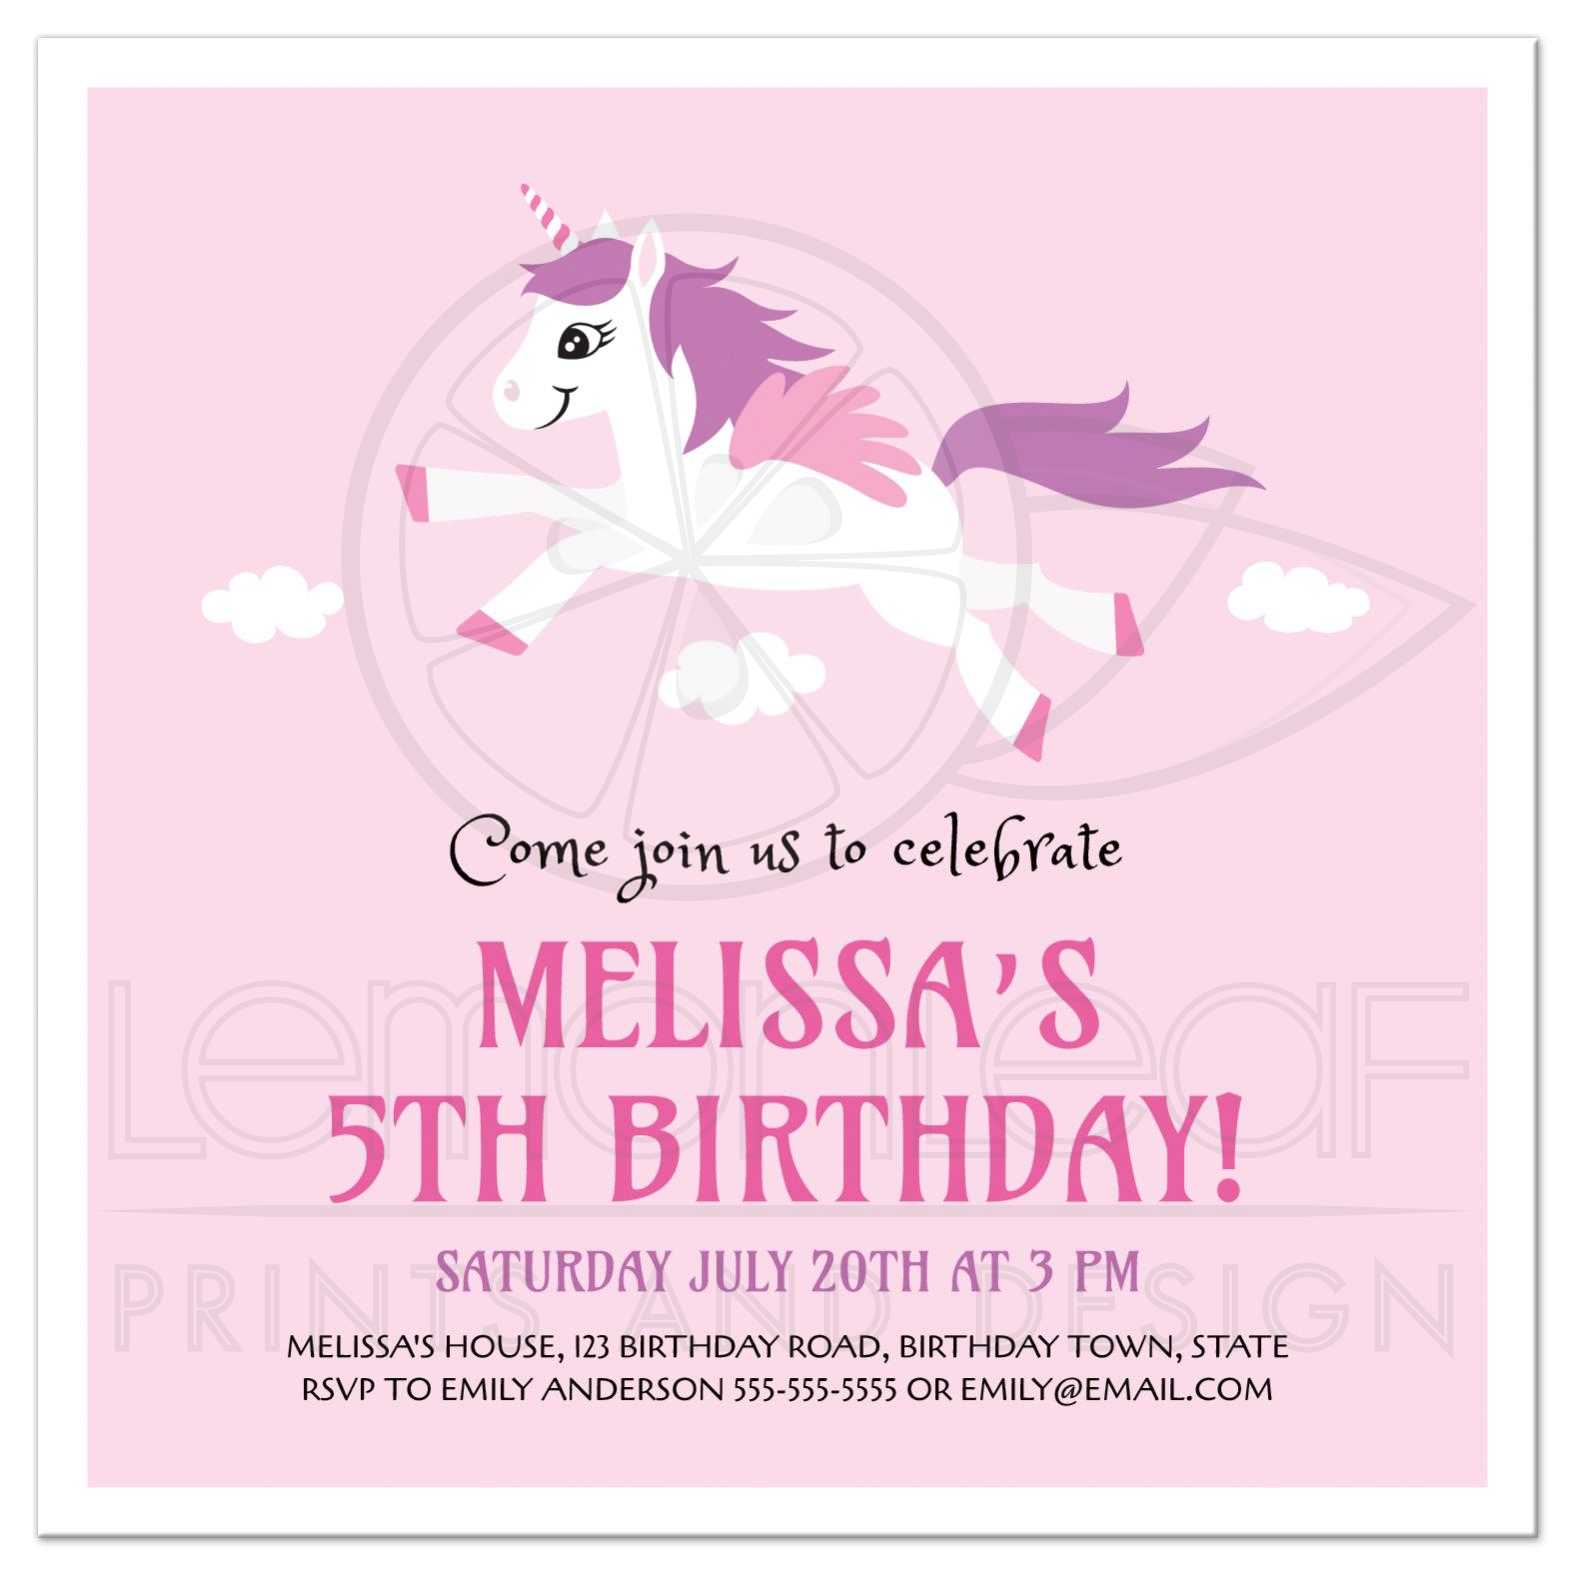 Cute unicorn birthday party invitation for girls please note that all designs on lemon leaf prints are flat printed designs all embellishments of ribbons bows flowers glitter buckles lace brooches stopboris Choice Image